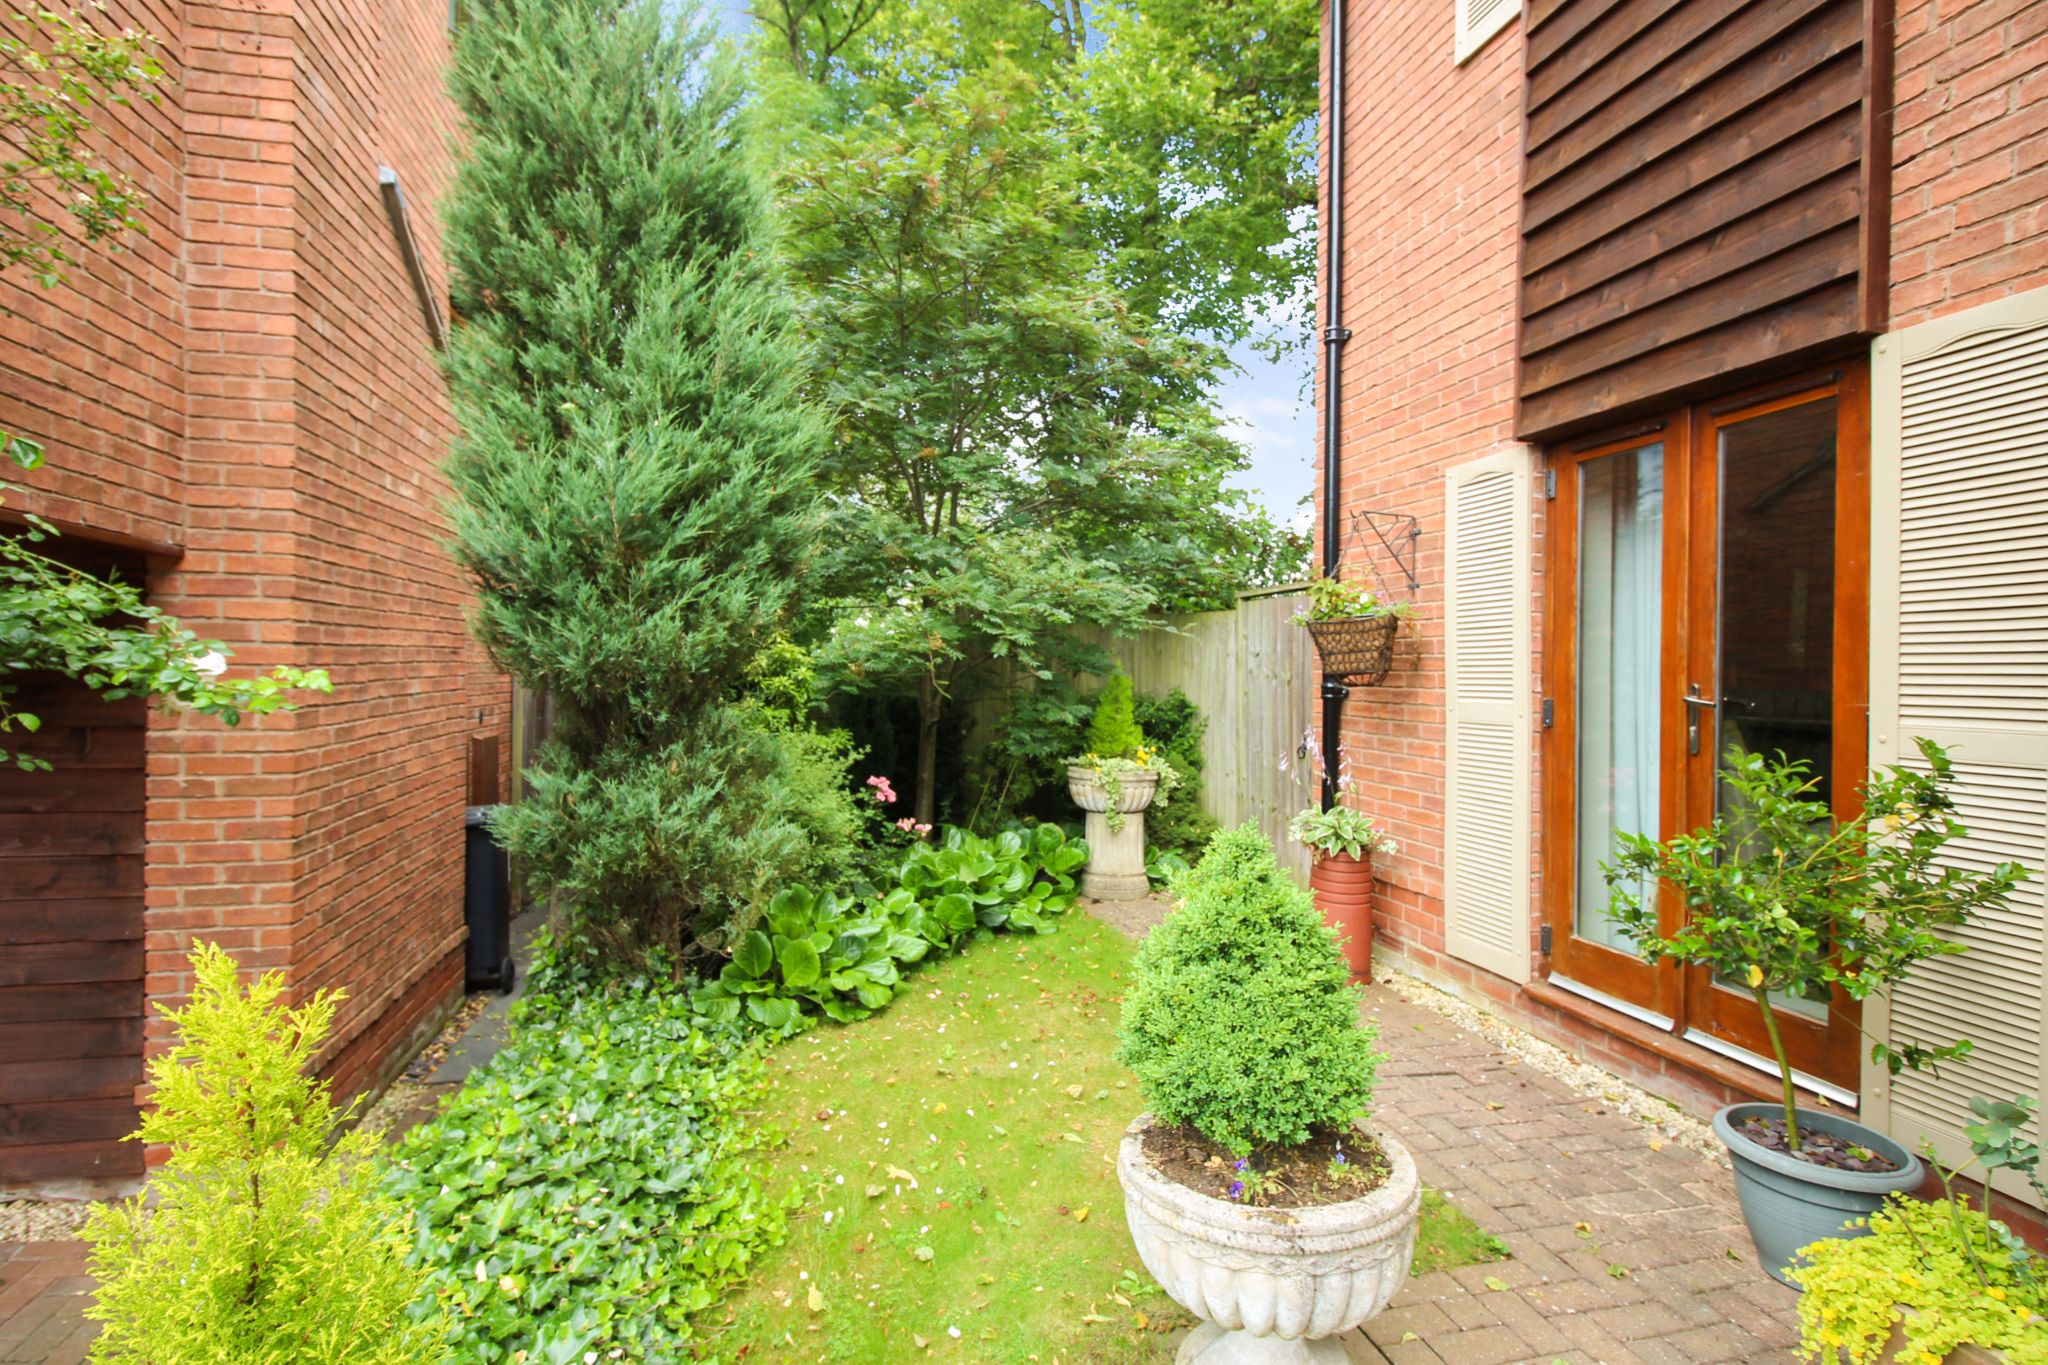 3 bedroom semi-detached house SSTC in Solihull - Photograph 15.